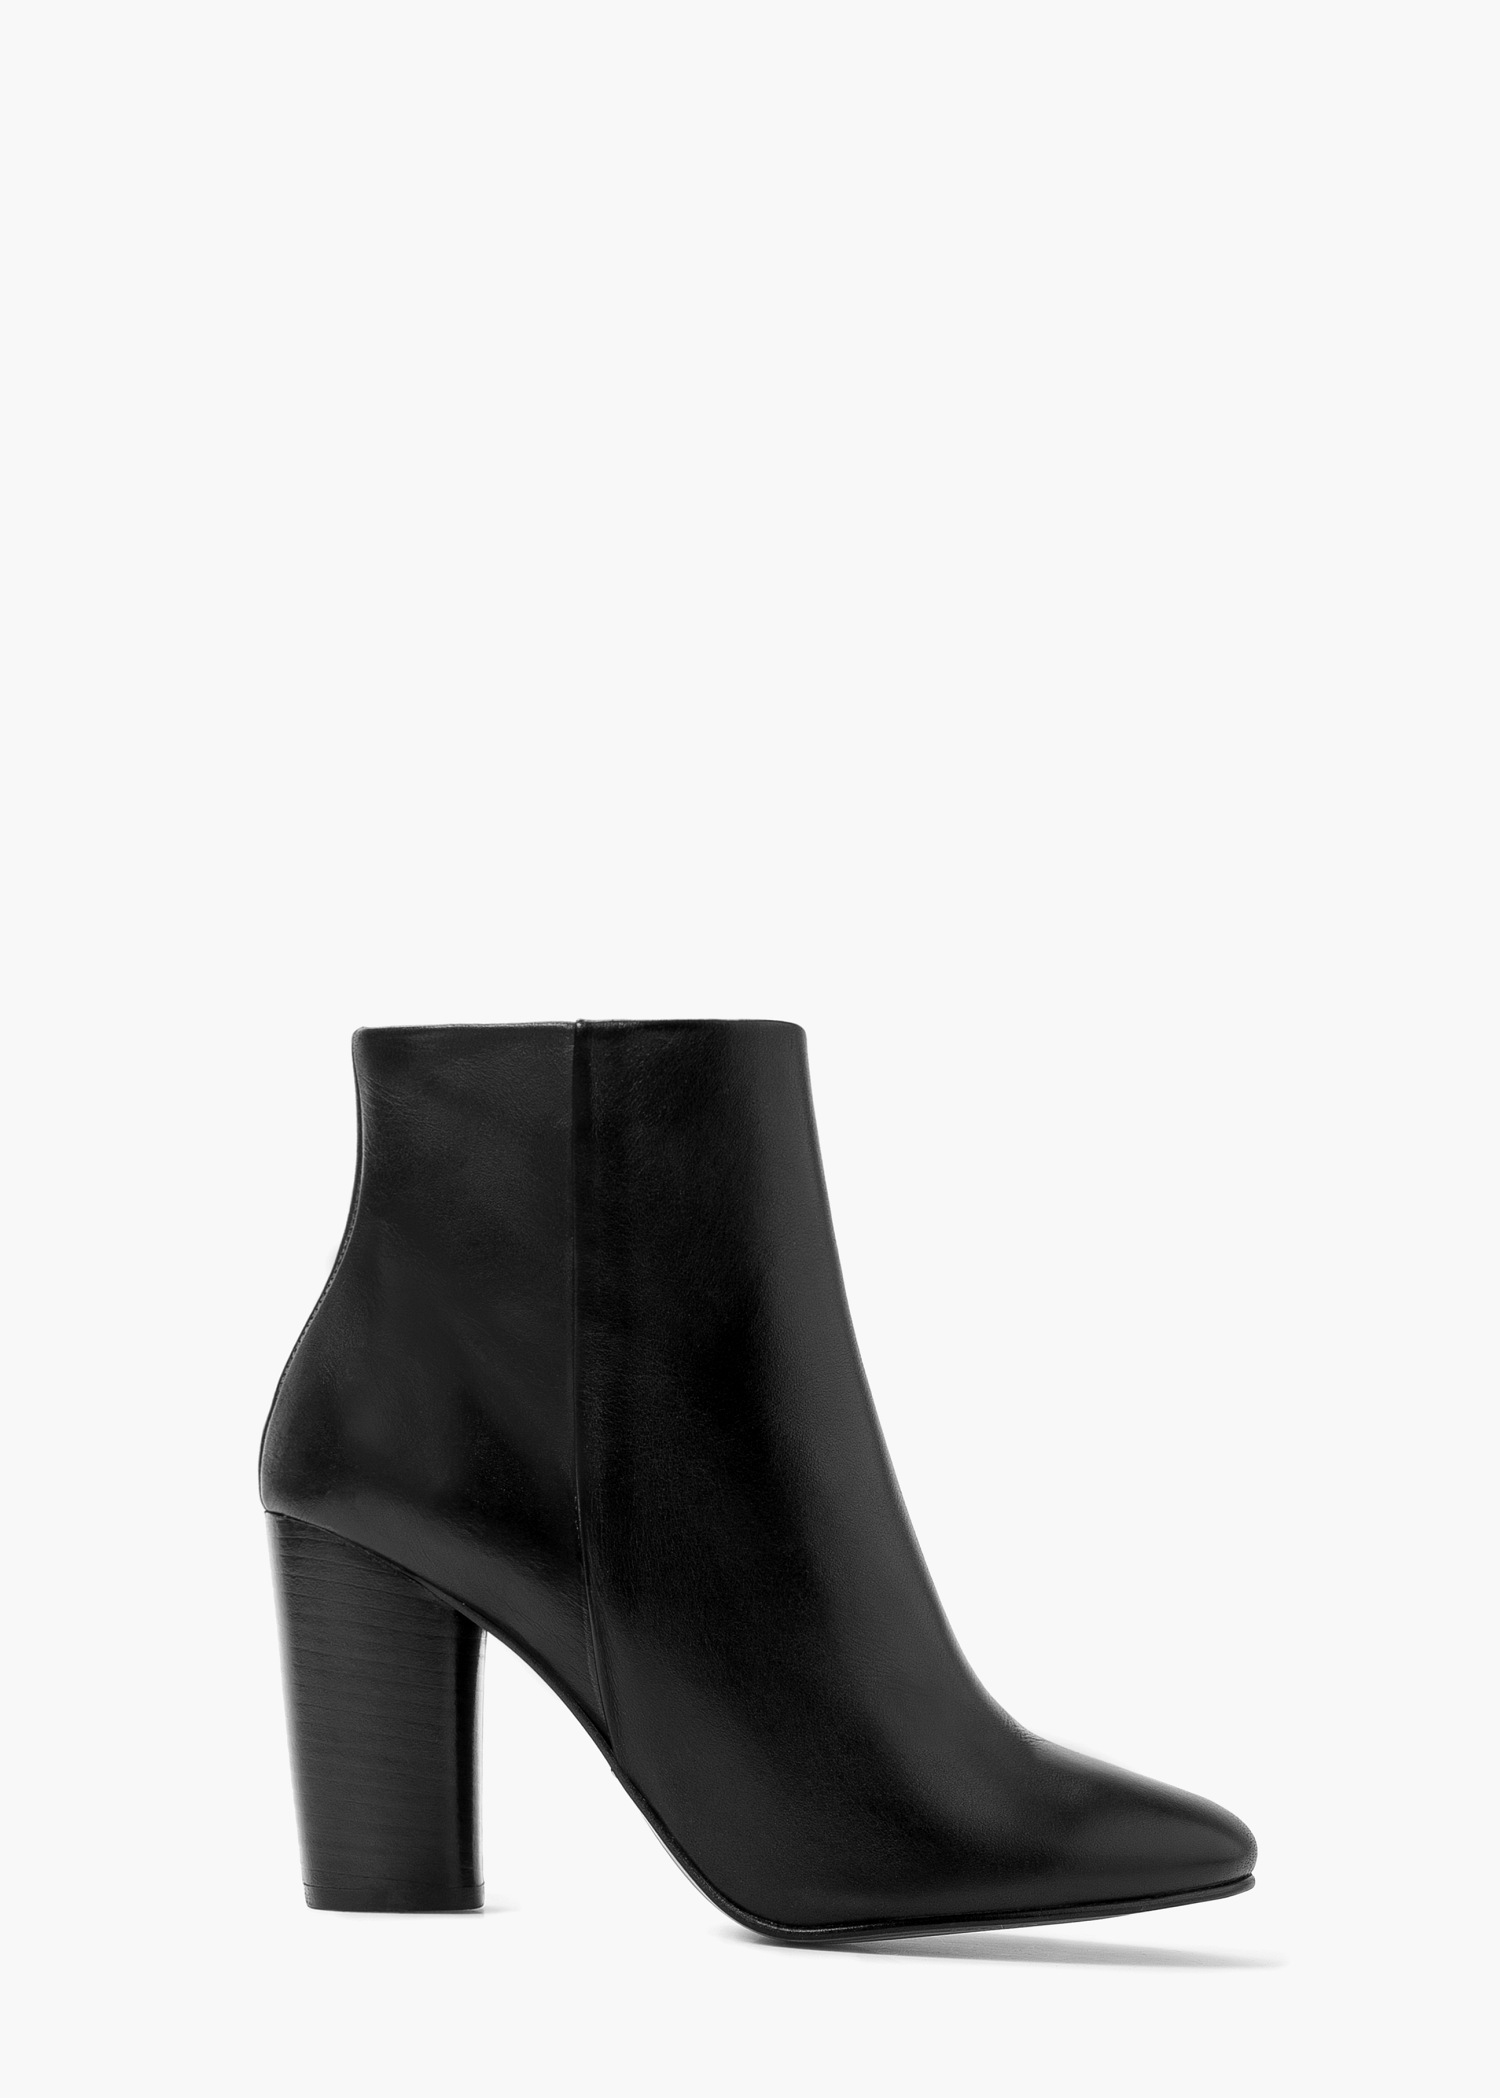 Mango Premium - Leather Heel Ankle Boots in Black | Lyst